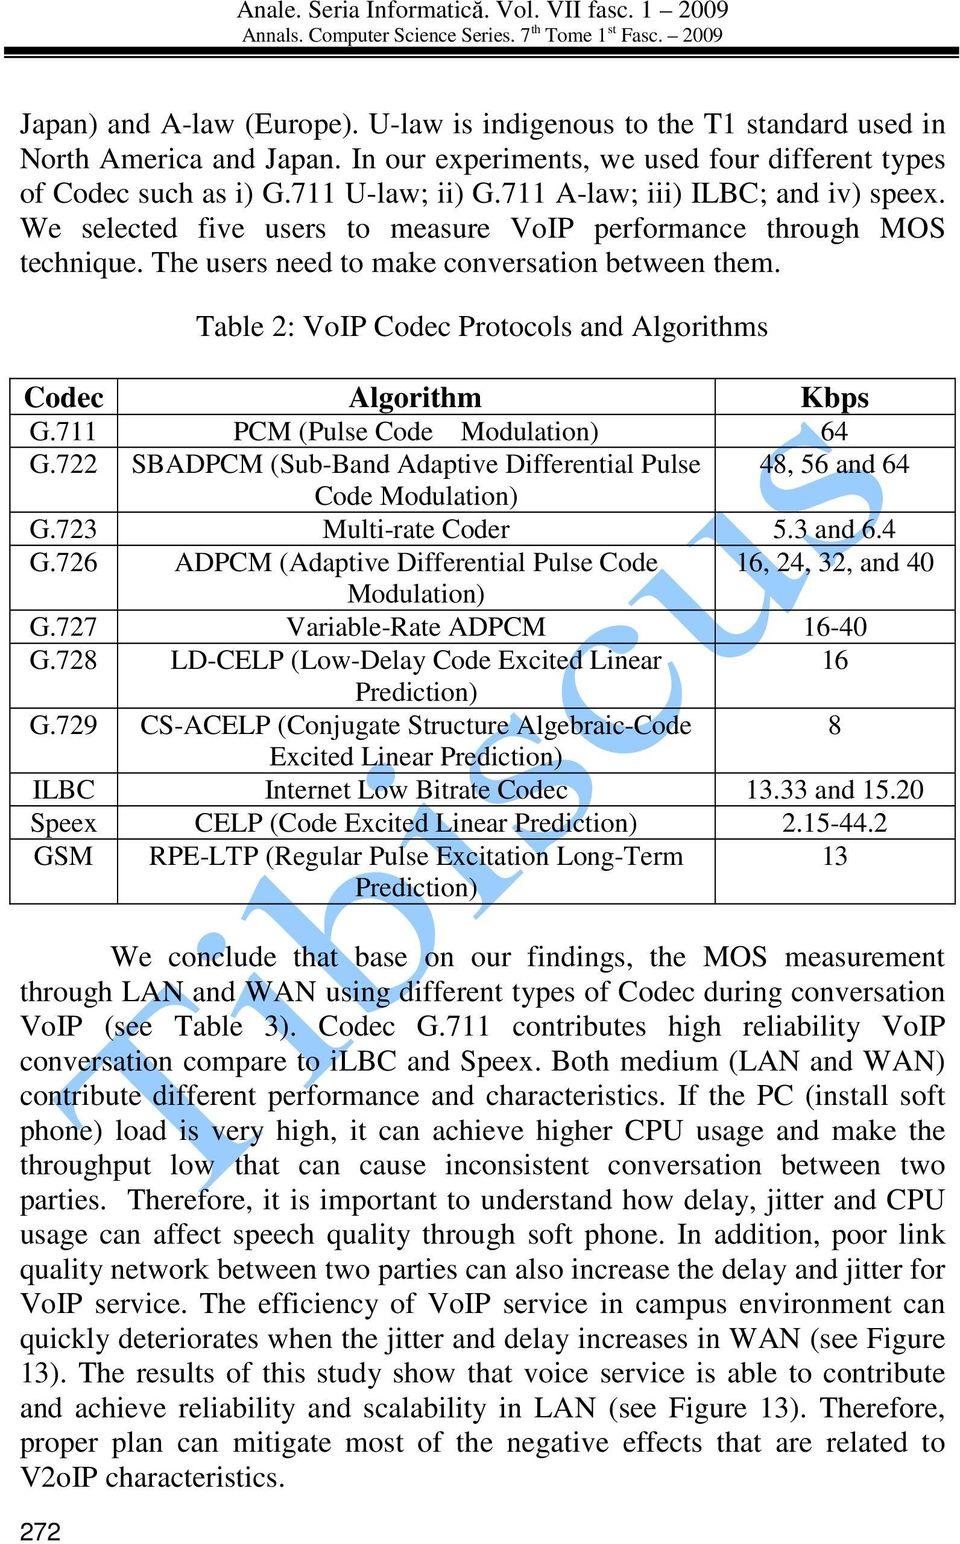 272 Table 2: VoIP Codec Protocols and Algorithms Codec Algorithm Kbps G.711 PCM (Pulse Code Modulation) 64 G.722 SBADPCM (Sub-Band Adaptive Differential Pulse 48, 56 and 64 Code Modulation) G.